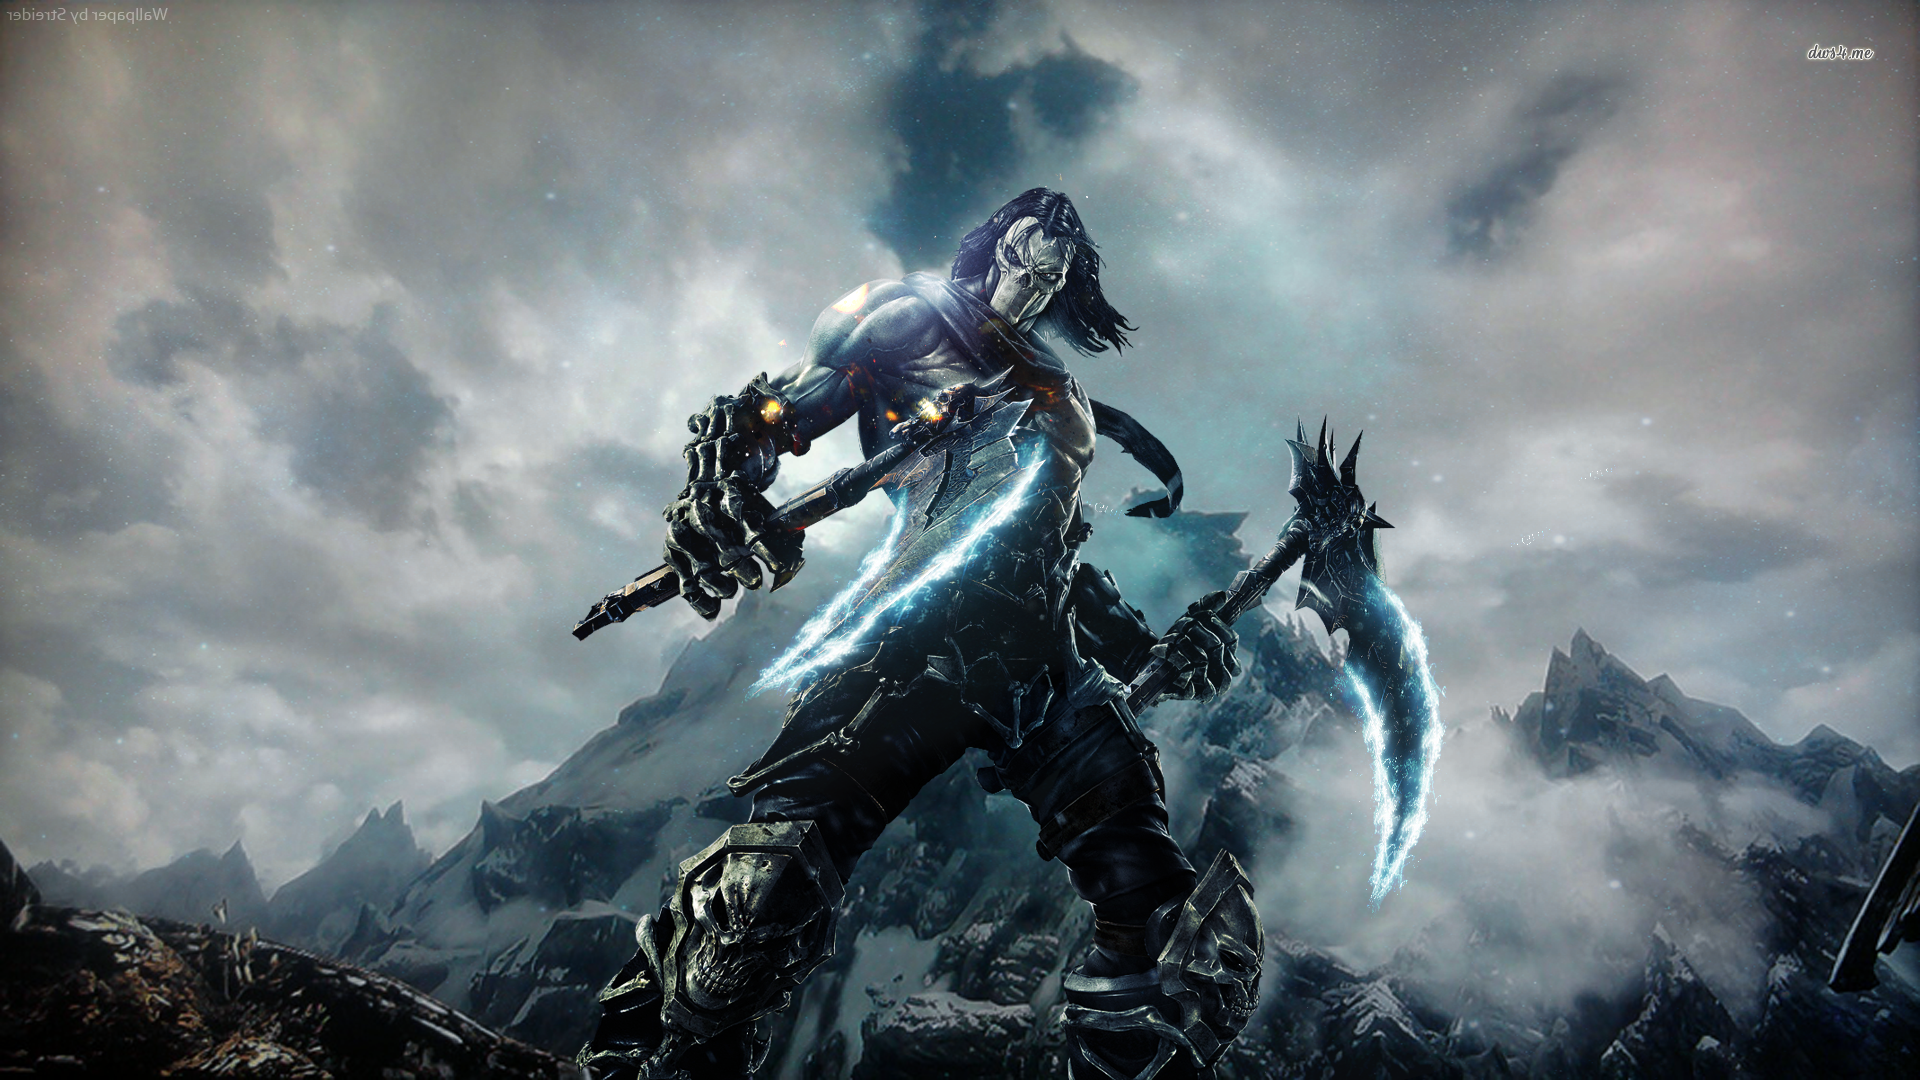 Darksiders 2 Wallpaper 1080p 1920x1080